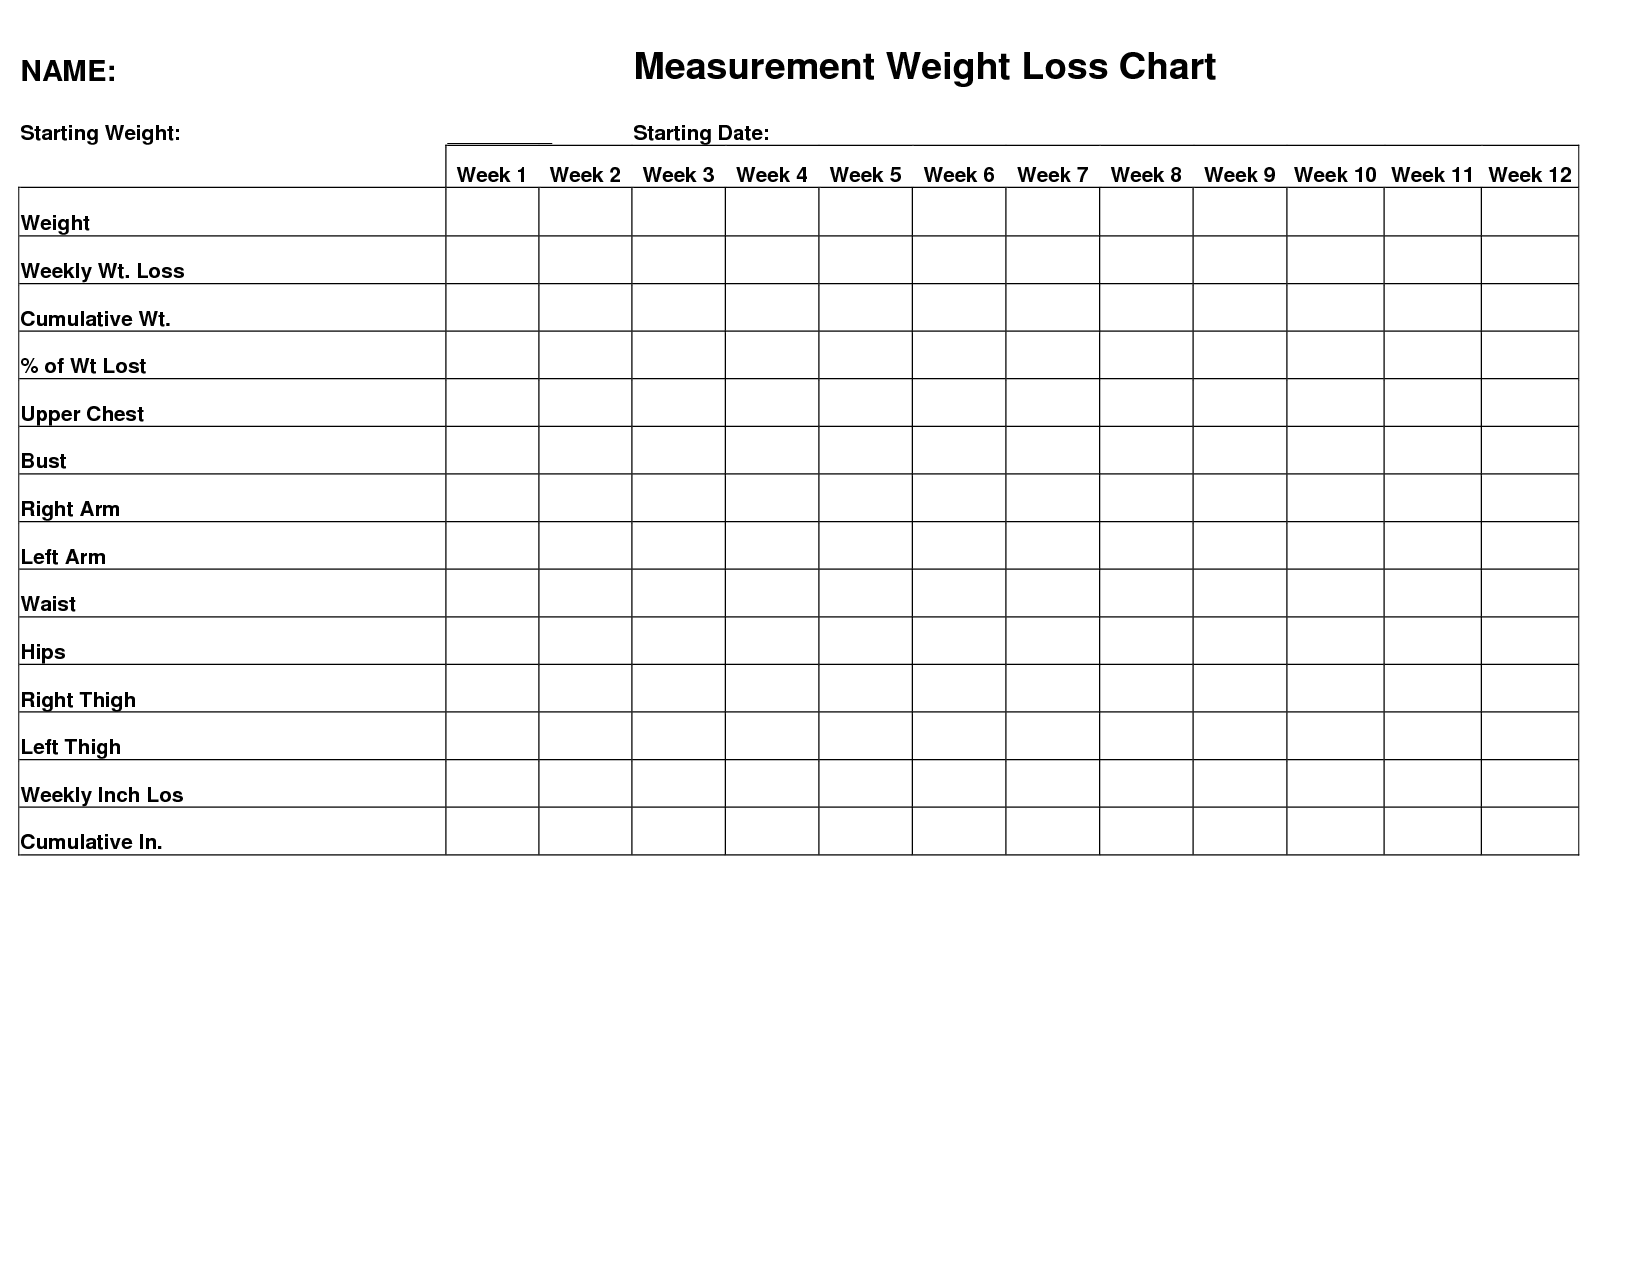 WeightMeasurement Tracking Chart   Weeks  Ideal Shape Recipes